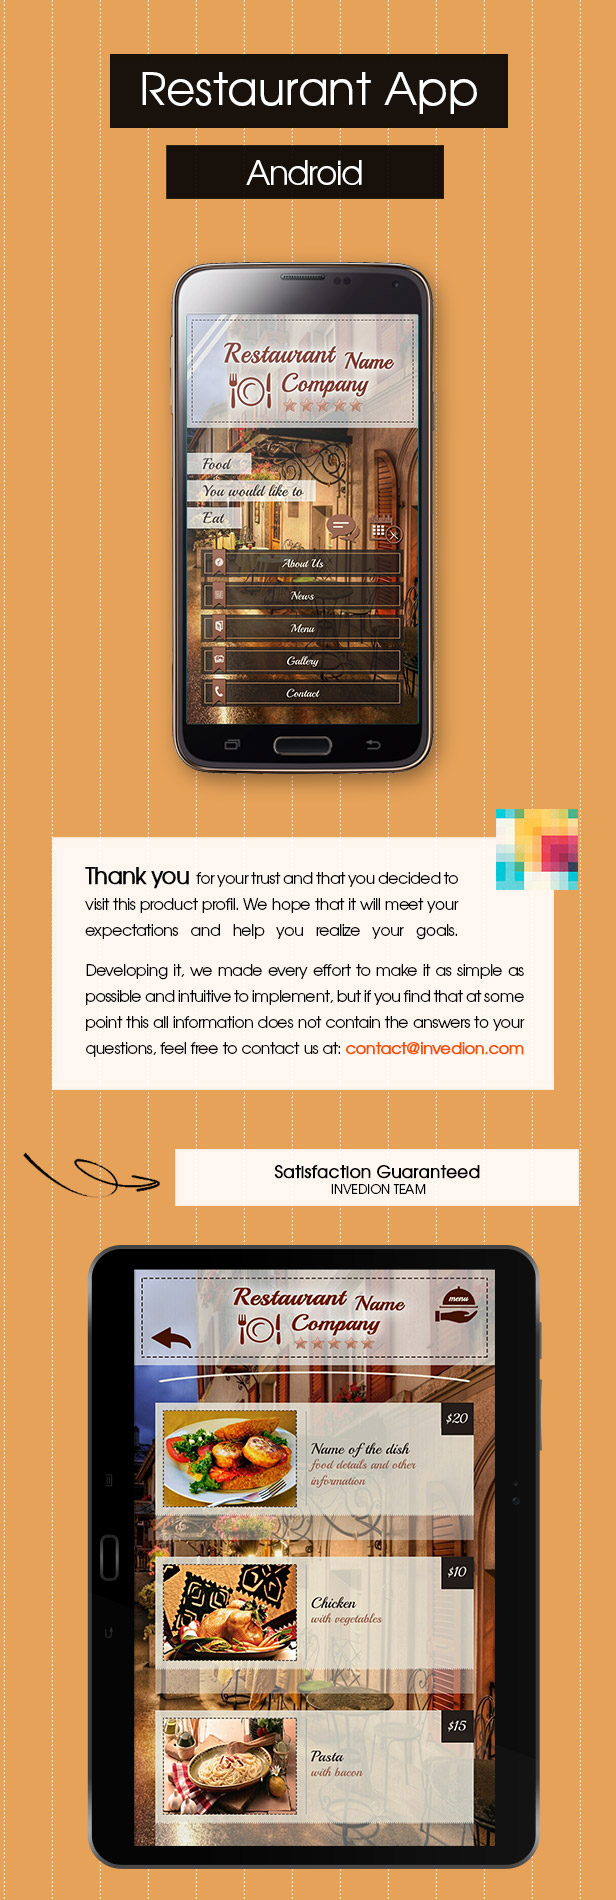 Restaurant App With CMS - Android - 2